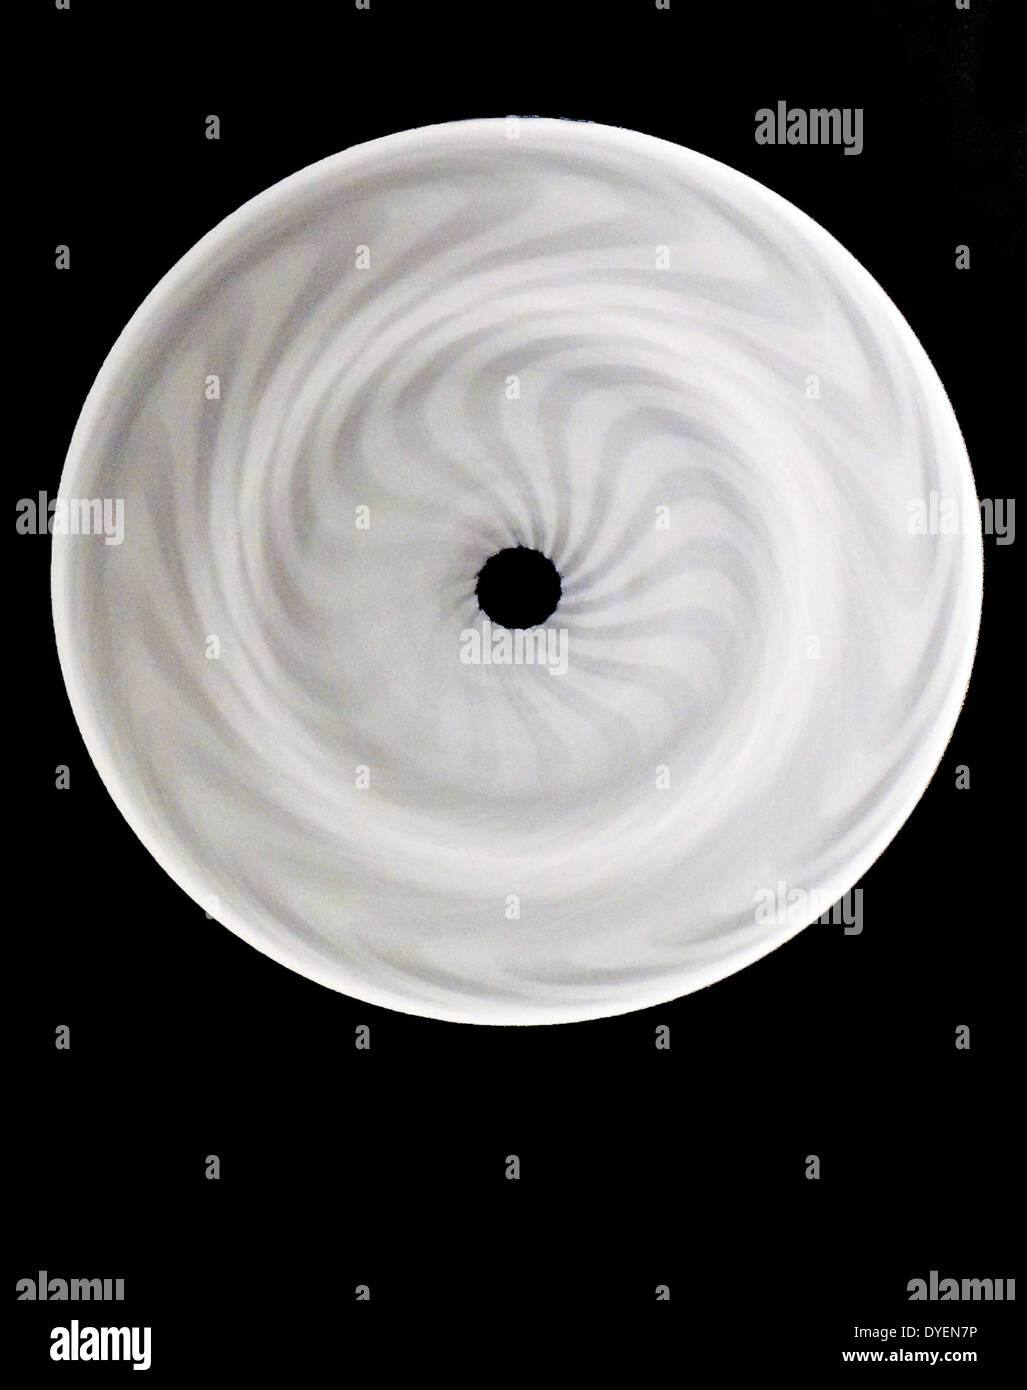 Black and white spiral optical illusion. - Stock Image